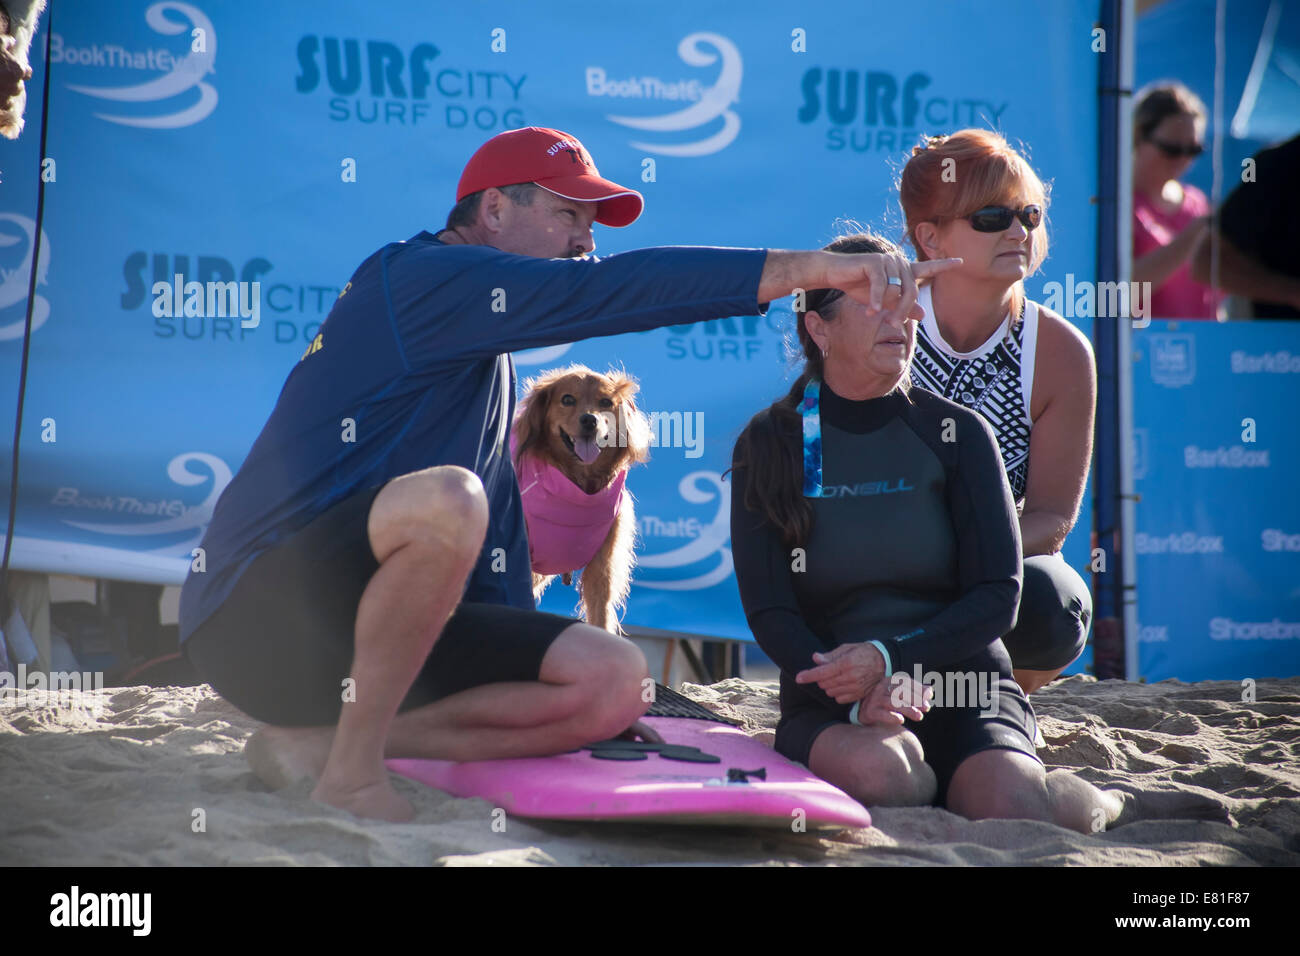 Huntington Beach, CA, USA. 28th September, 2014. Competitor and handlers at Surf City Surf Dog™ annual canine surfing Stock Photo